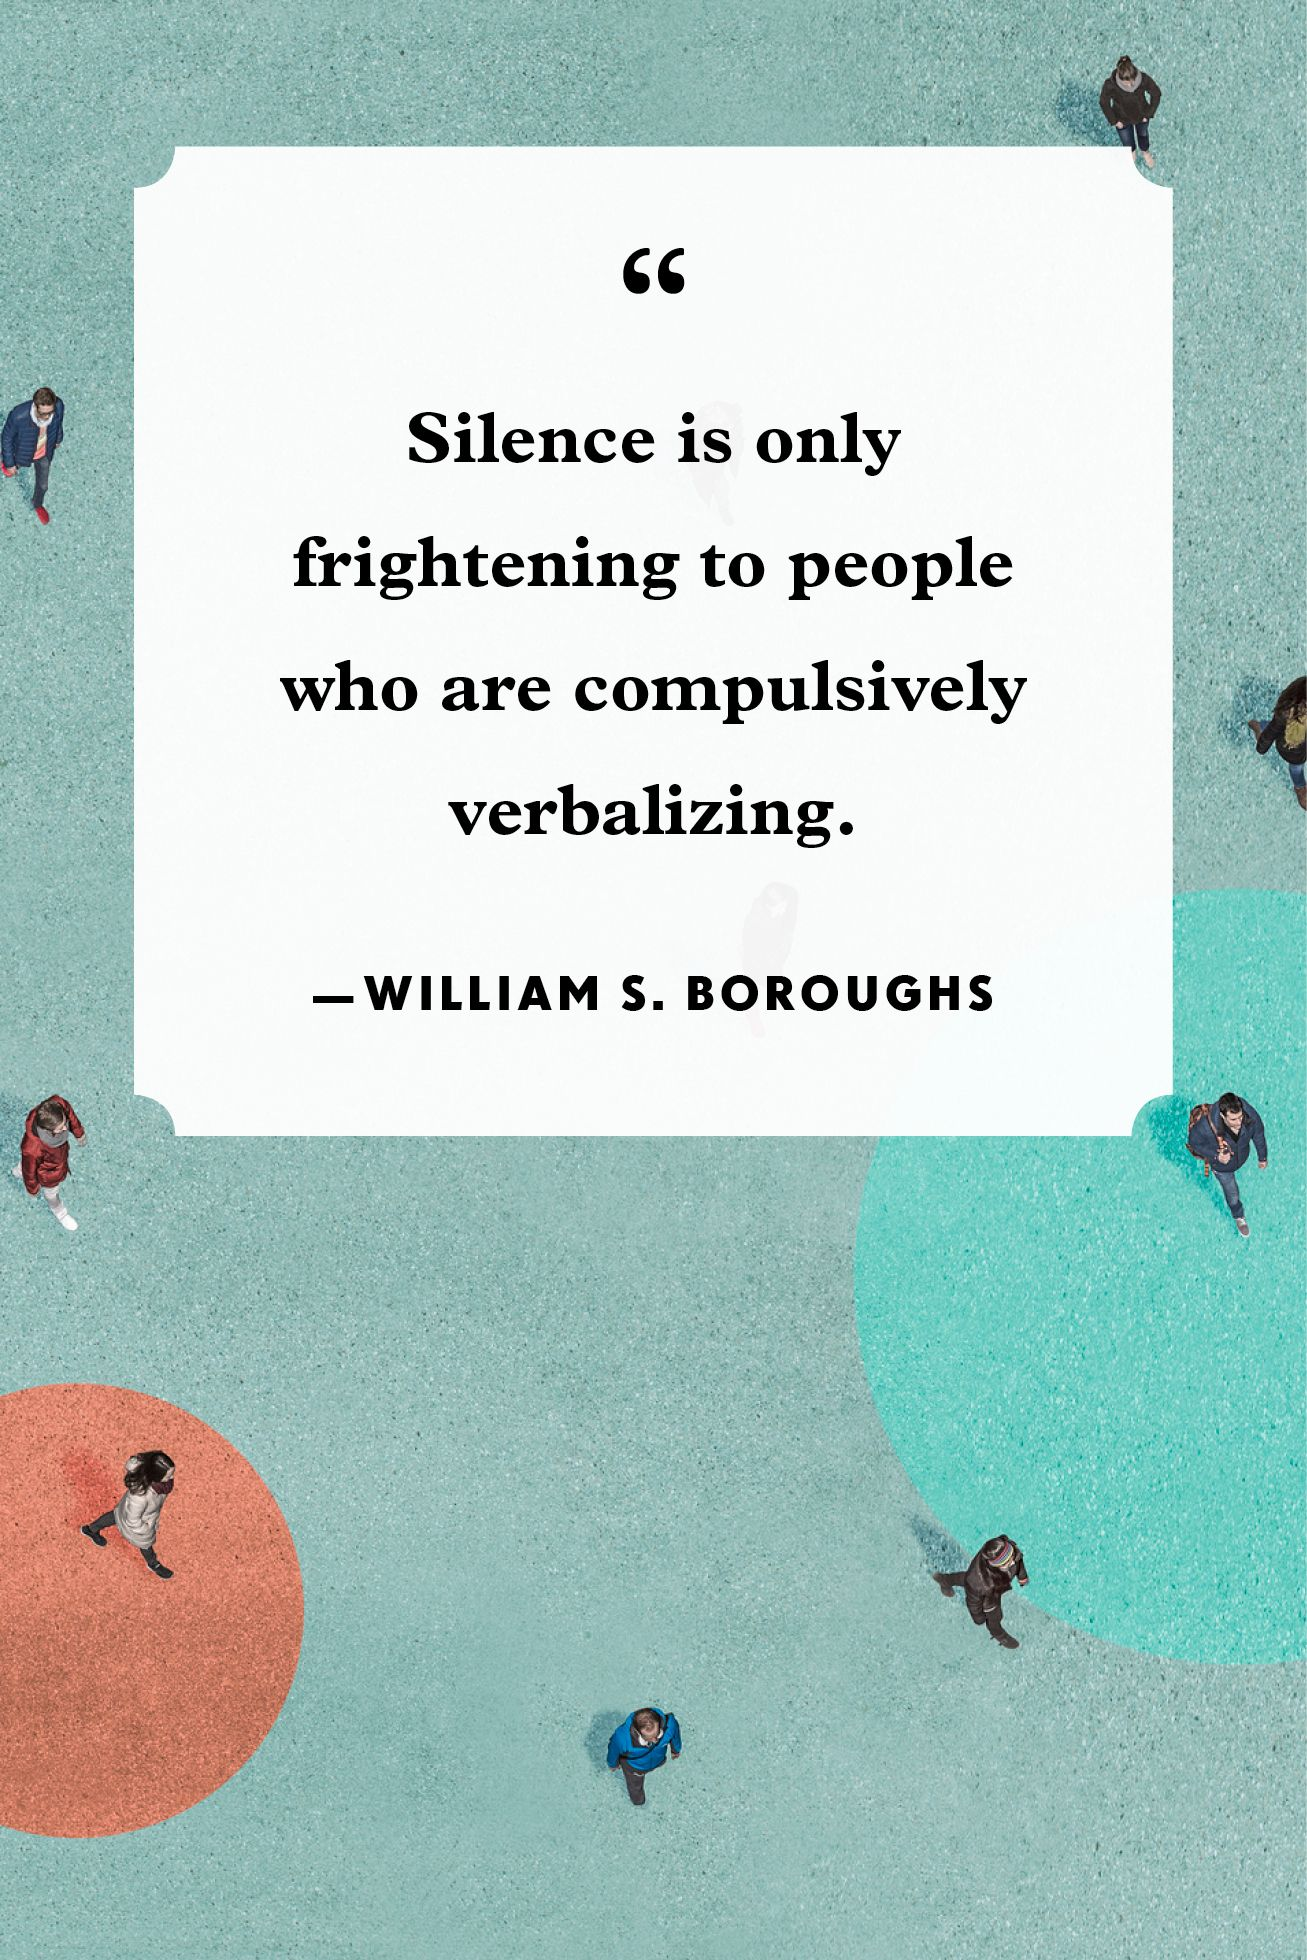 Quotes On Isolation : quotes, isolation, Social, Distancing, Quotes, Quarantine, Sayings, Instagram, Posts